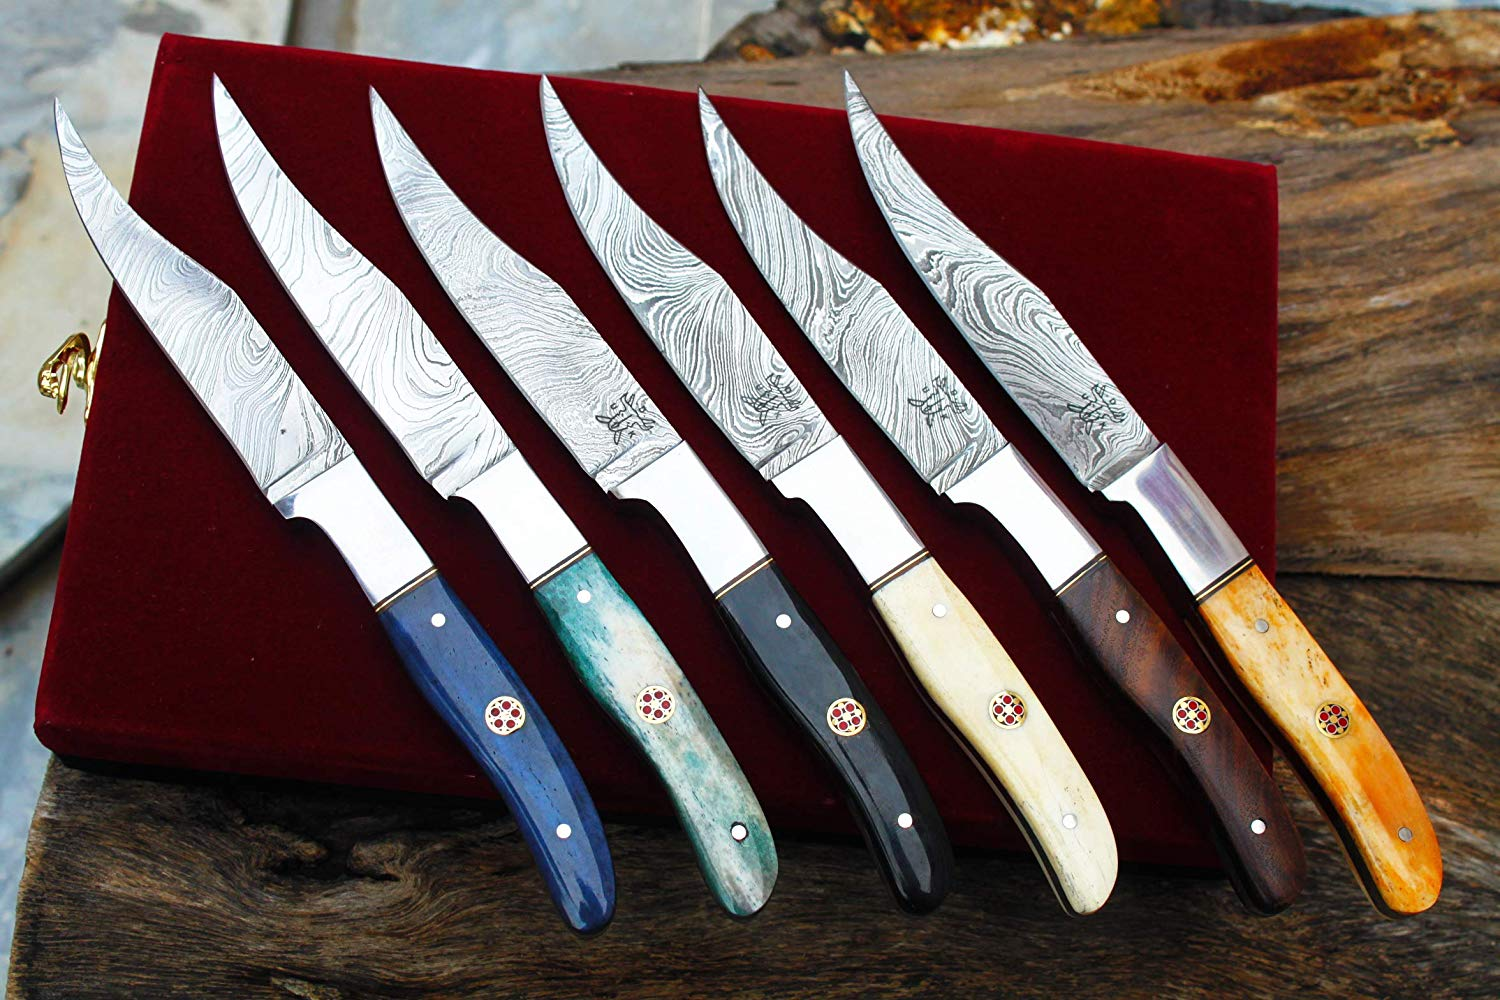 "Set of 6 Damascus Handmade 4.4"" Steak-Knives w/Bone, Horn,Walnut Wood,Olive, Horn Handle & Handmade Box UDK-S-B-03"